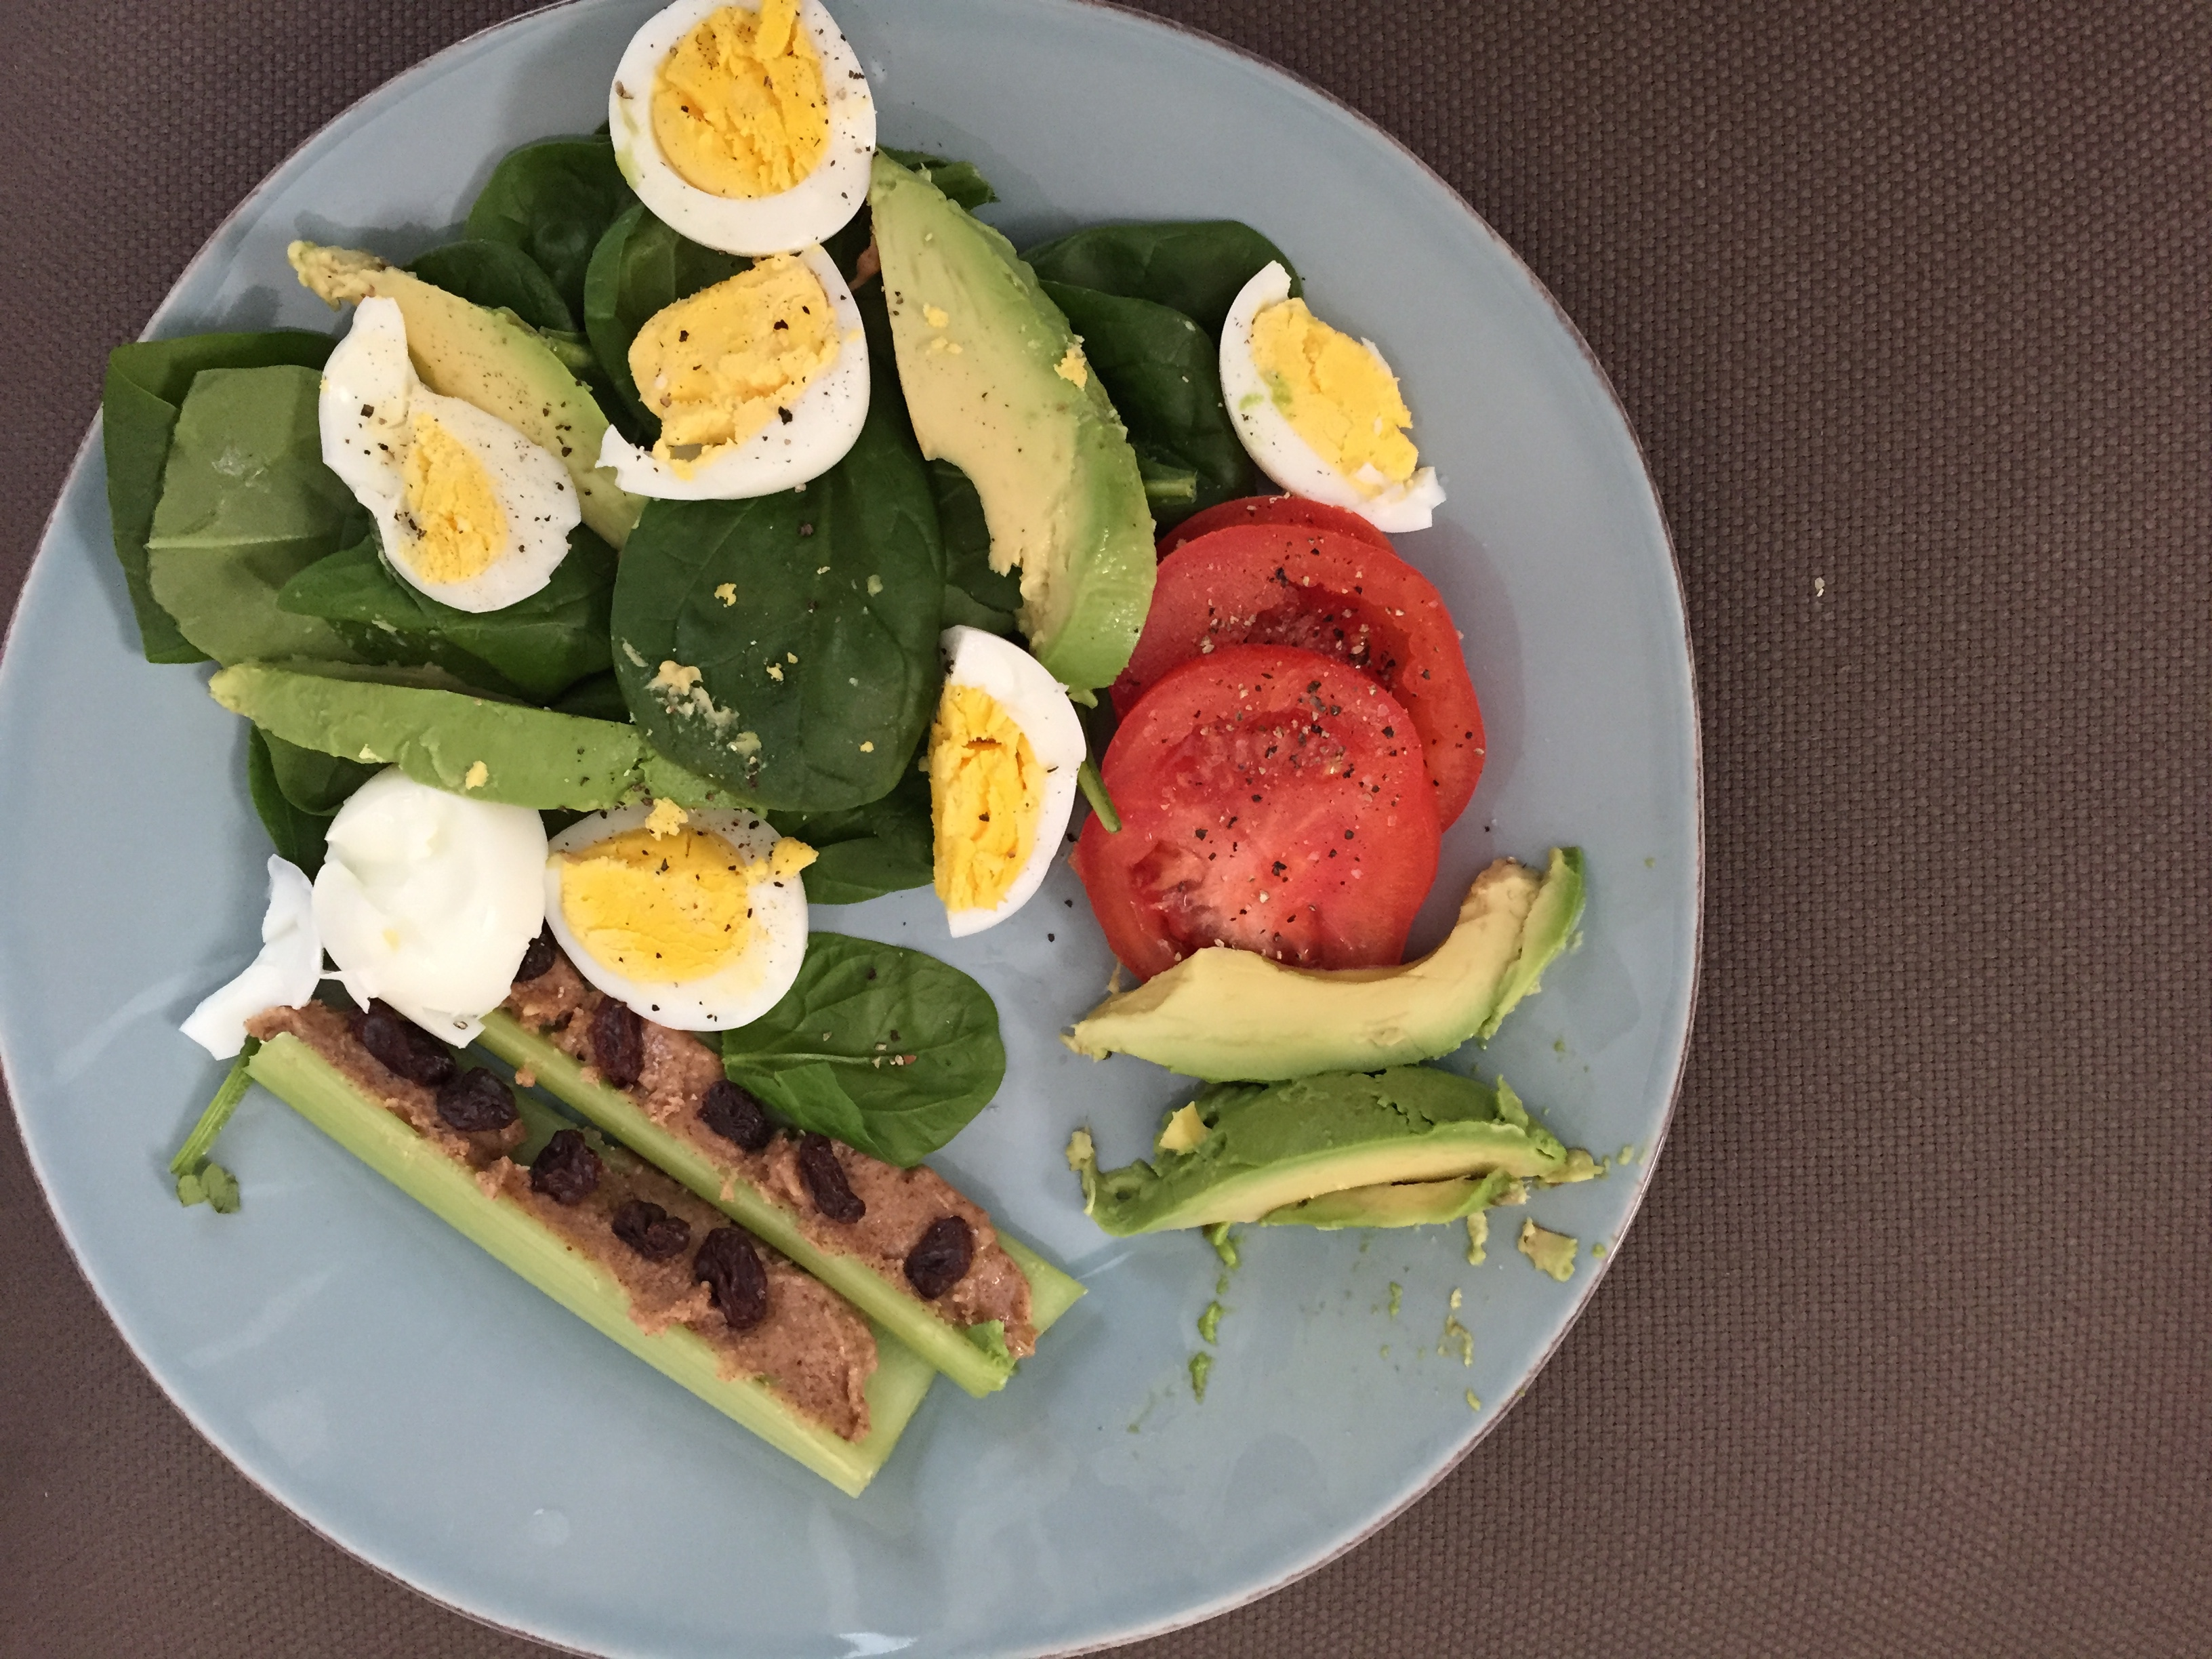 spinach, egg, tomato, avocado, celery with homemade almond butter and unsweetened raisons